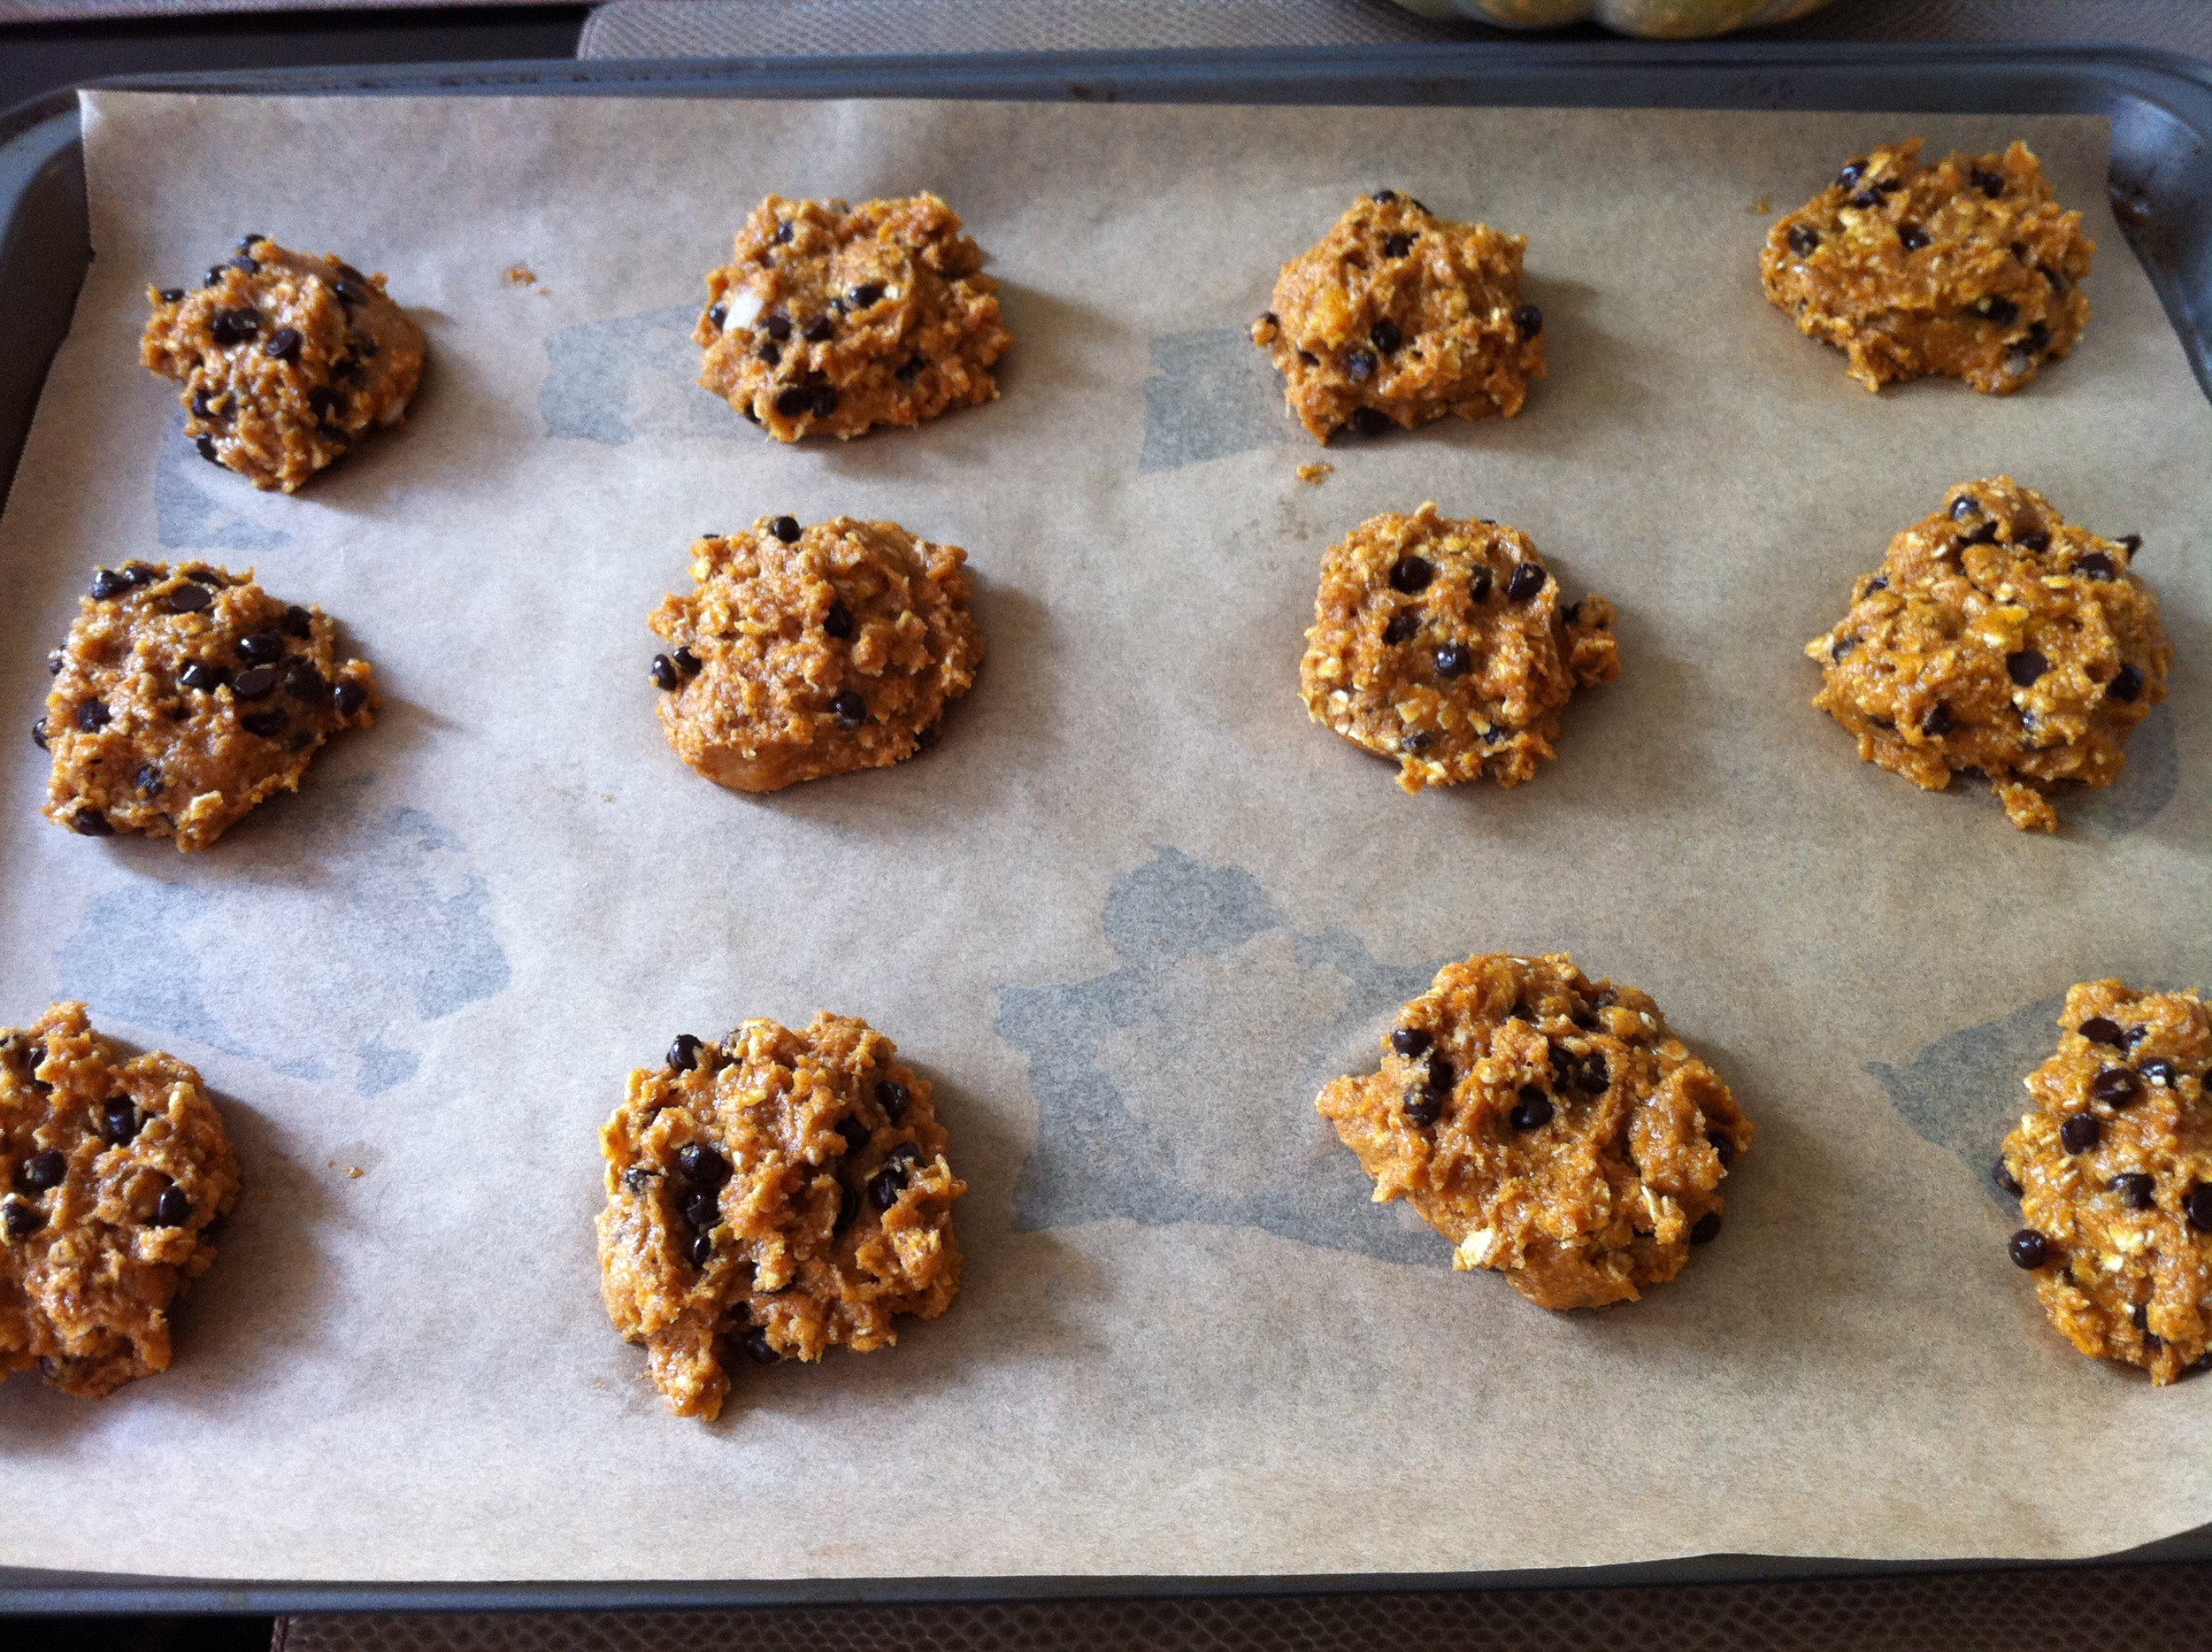 These vegan pumpkin oat chocolate chip cookies were so amazing and delicious.